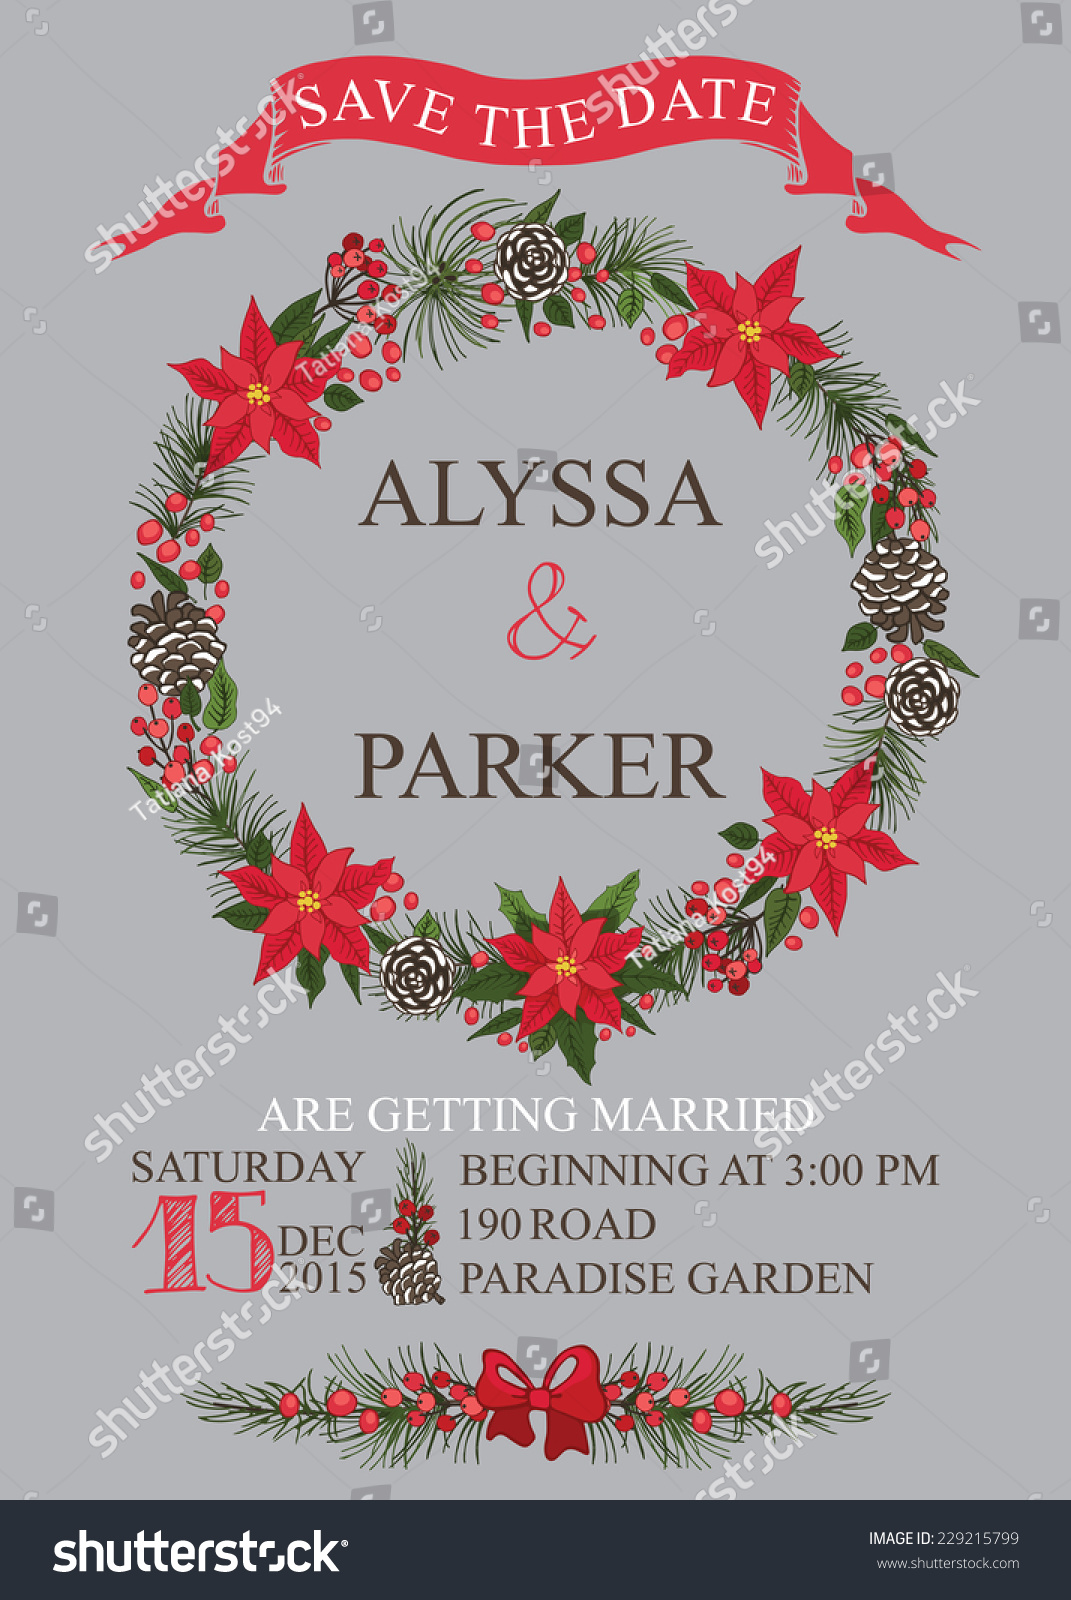 winter wedding save date card christmas stock vector royalty free